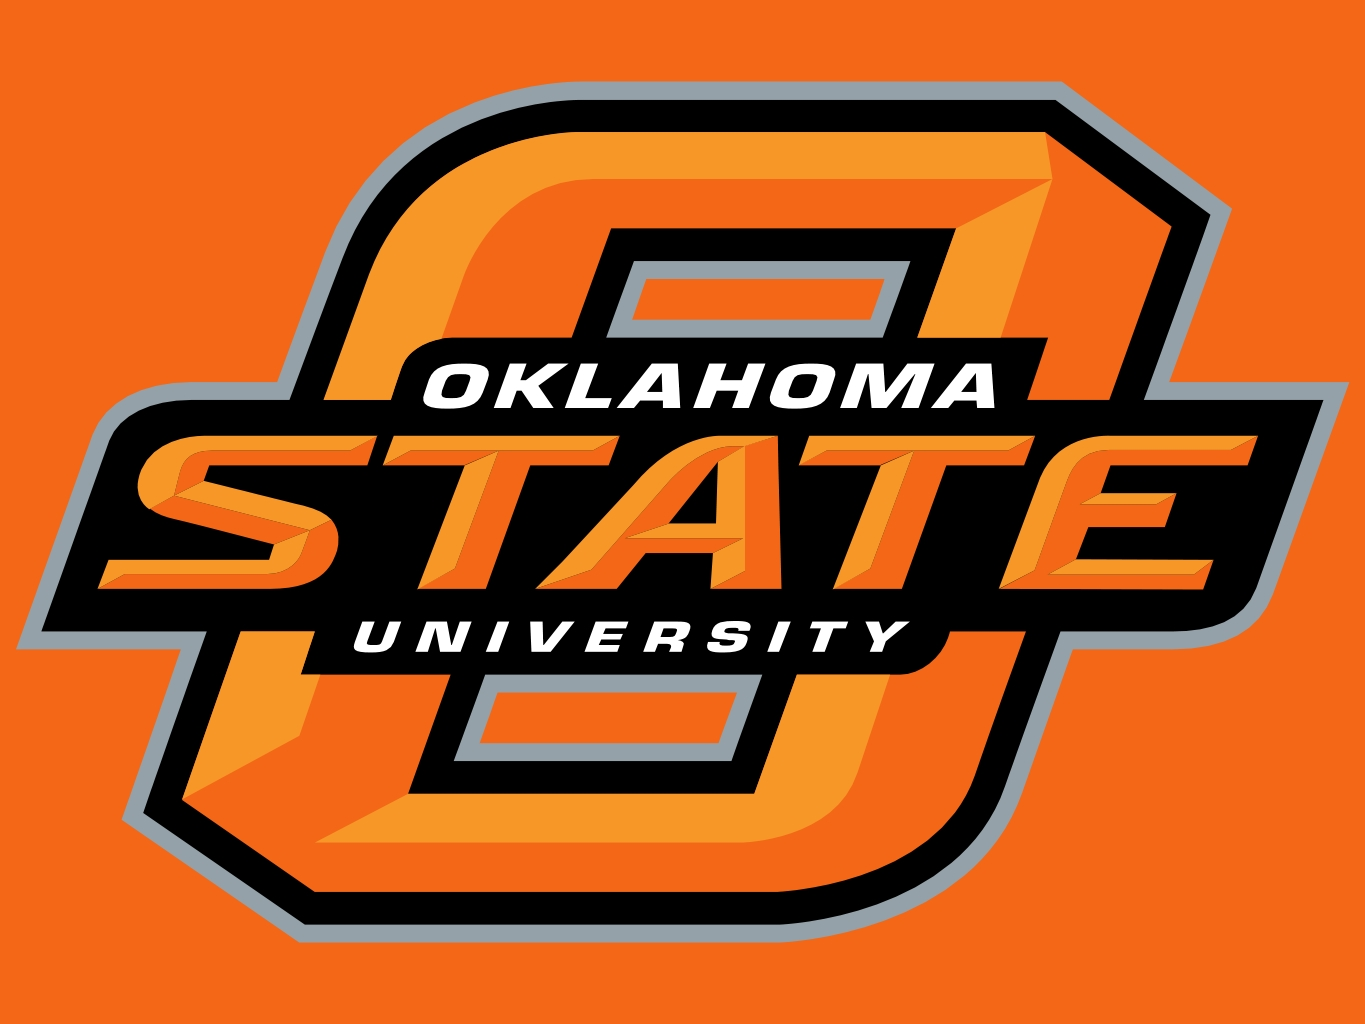 48+ Oklahoma State University Wallpaper on WallpaperSafari